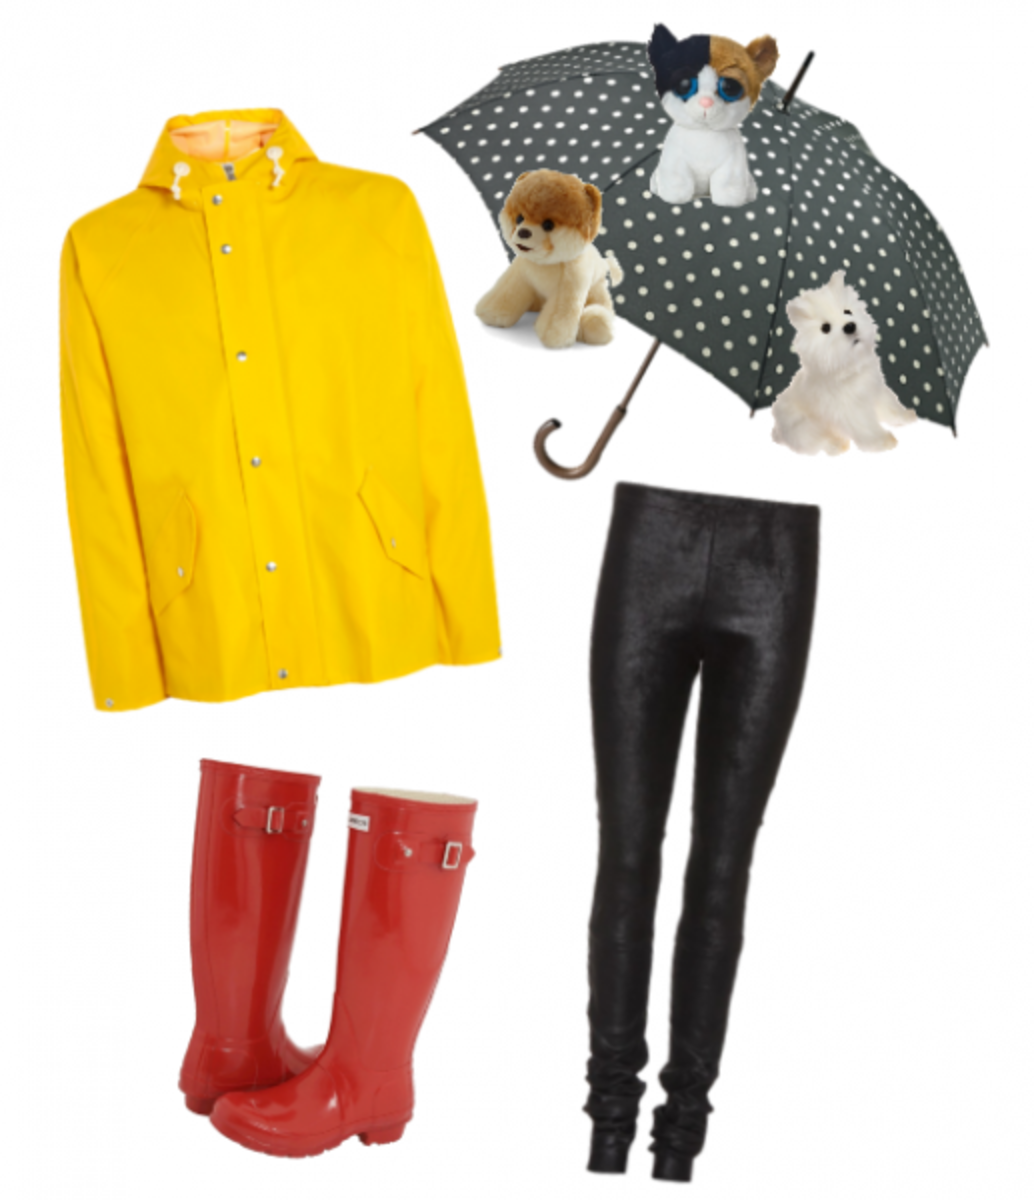 Another rain costume you can make yourself.